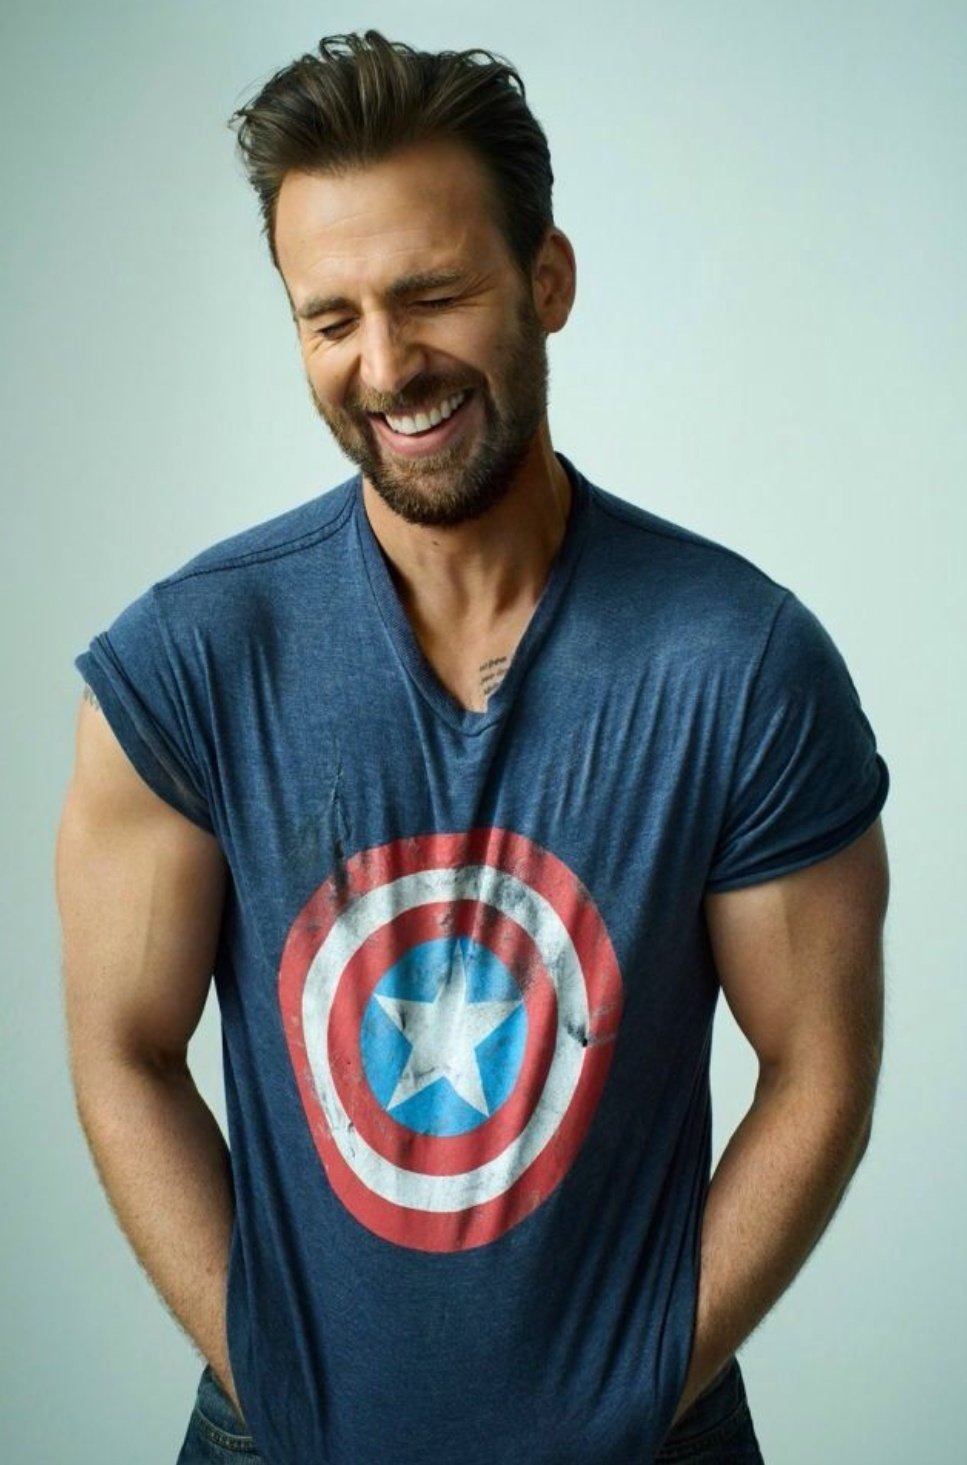 HAPPY BIRTHDAY TO THE ONE AND ONLY CHRIS EVANS